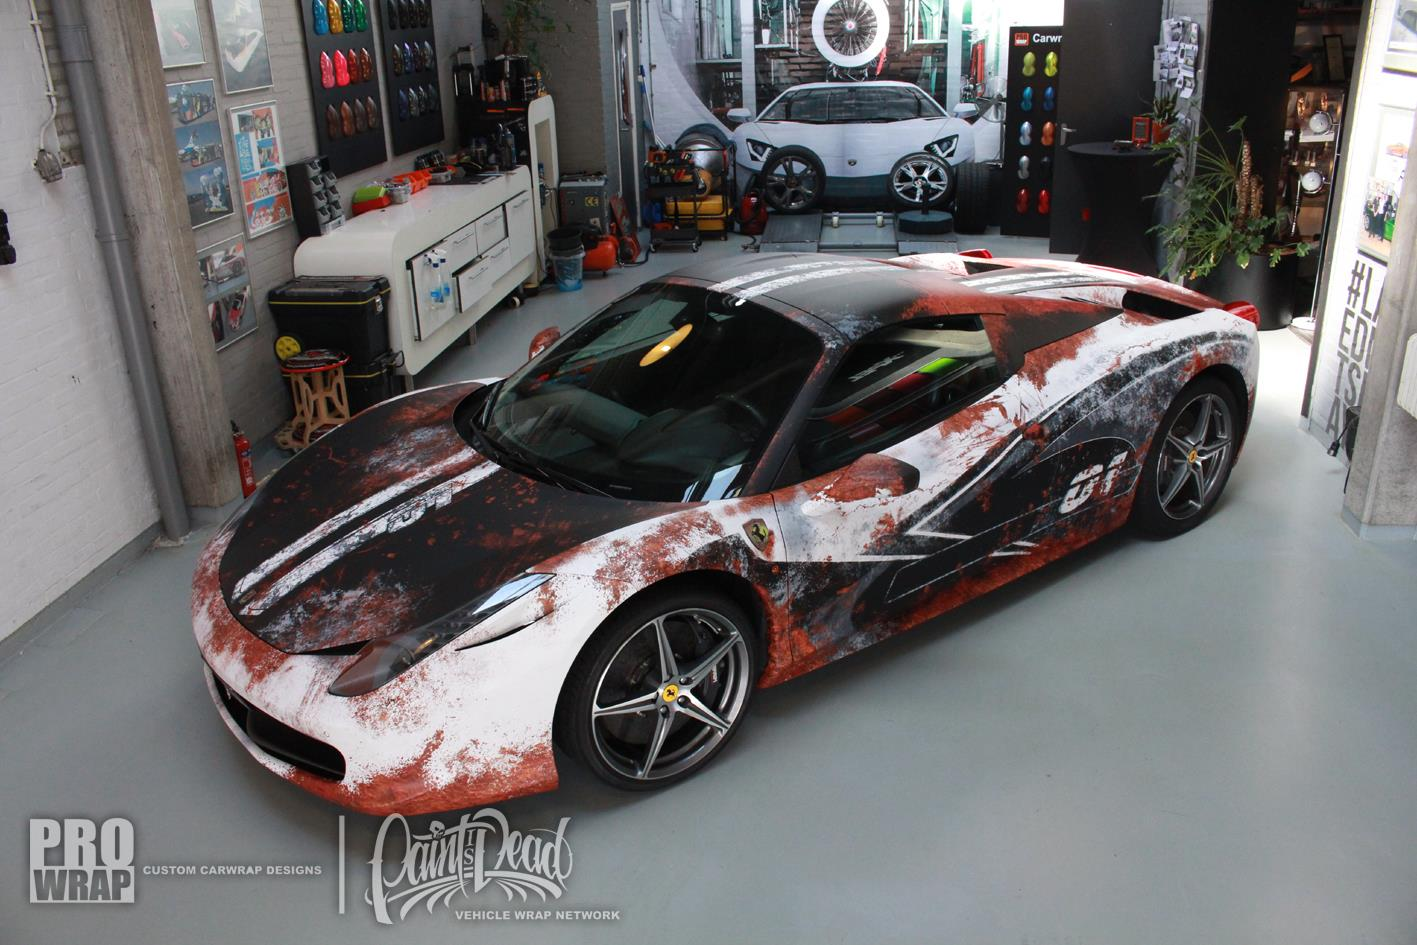 Auto Vinyl Wrap >> Paint is Dead: Ferrari 458 Spider Gets Rust Wrap! - GTspirit